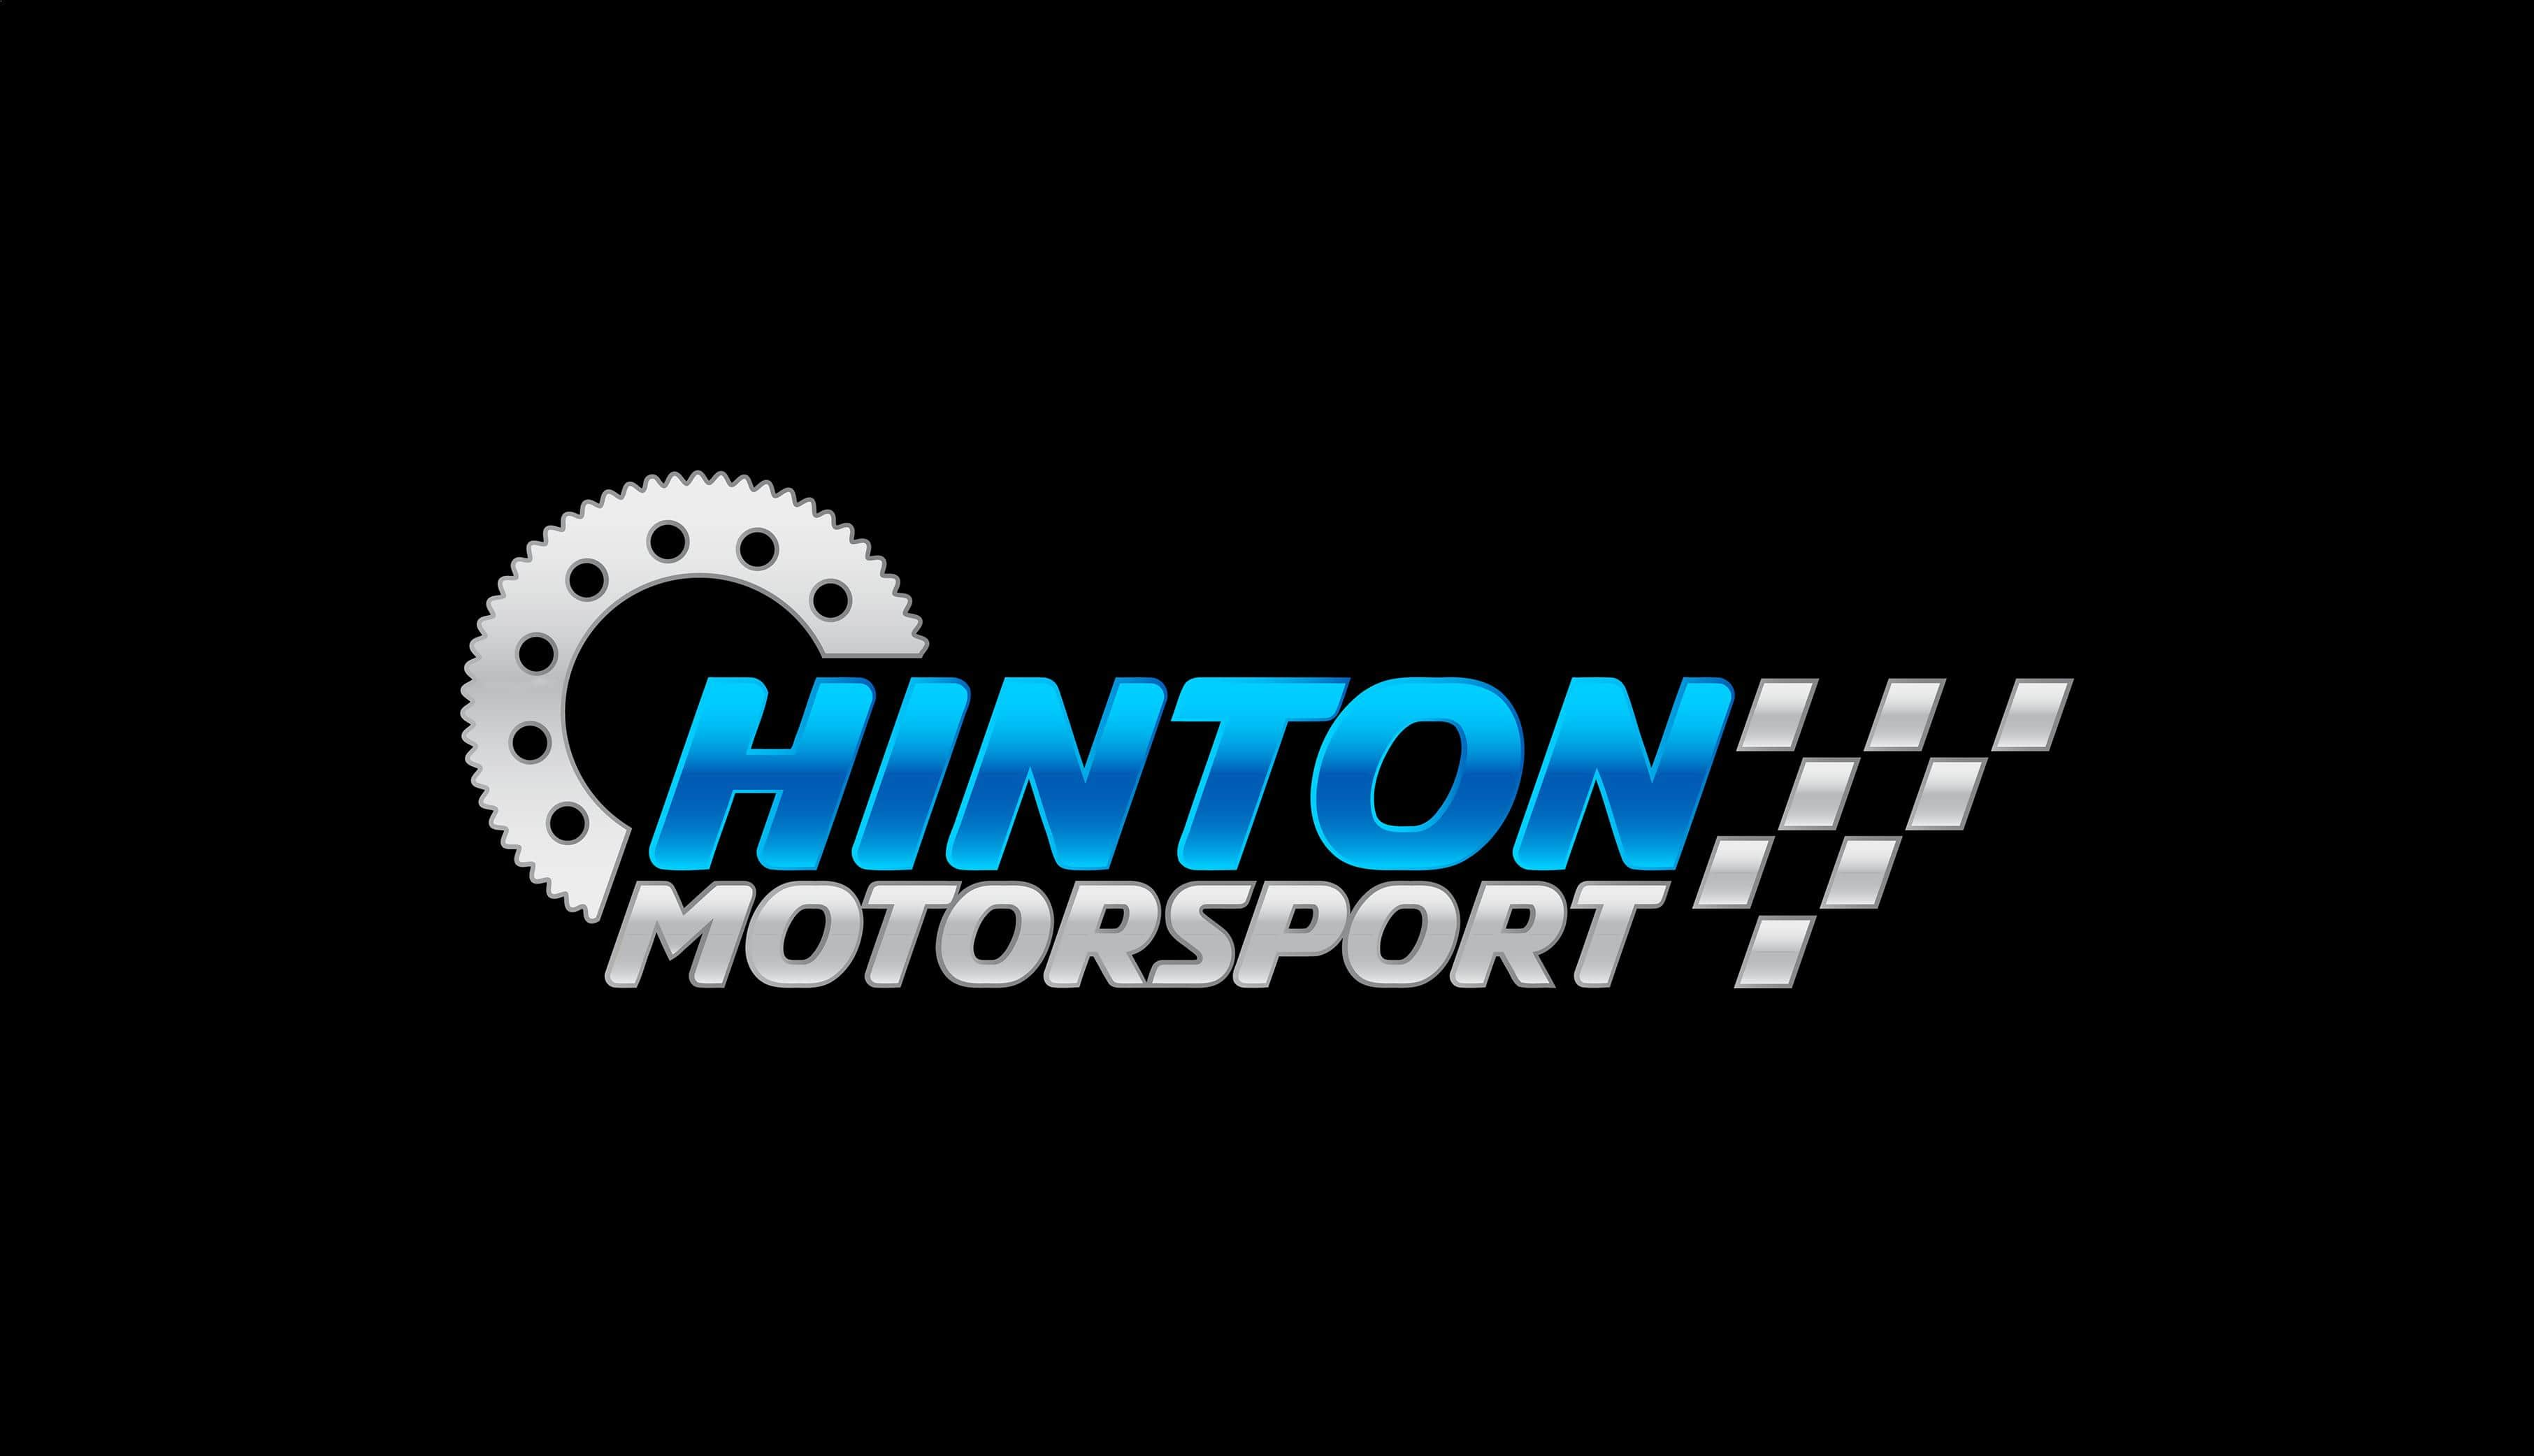 Hinton Motorsport - Logo